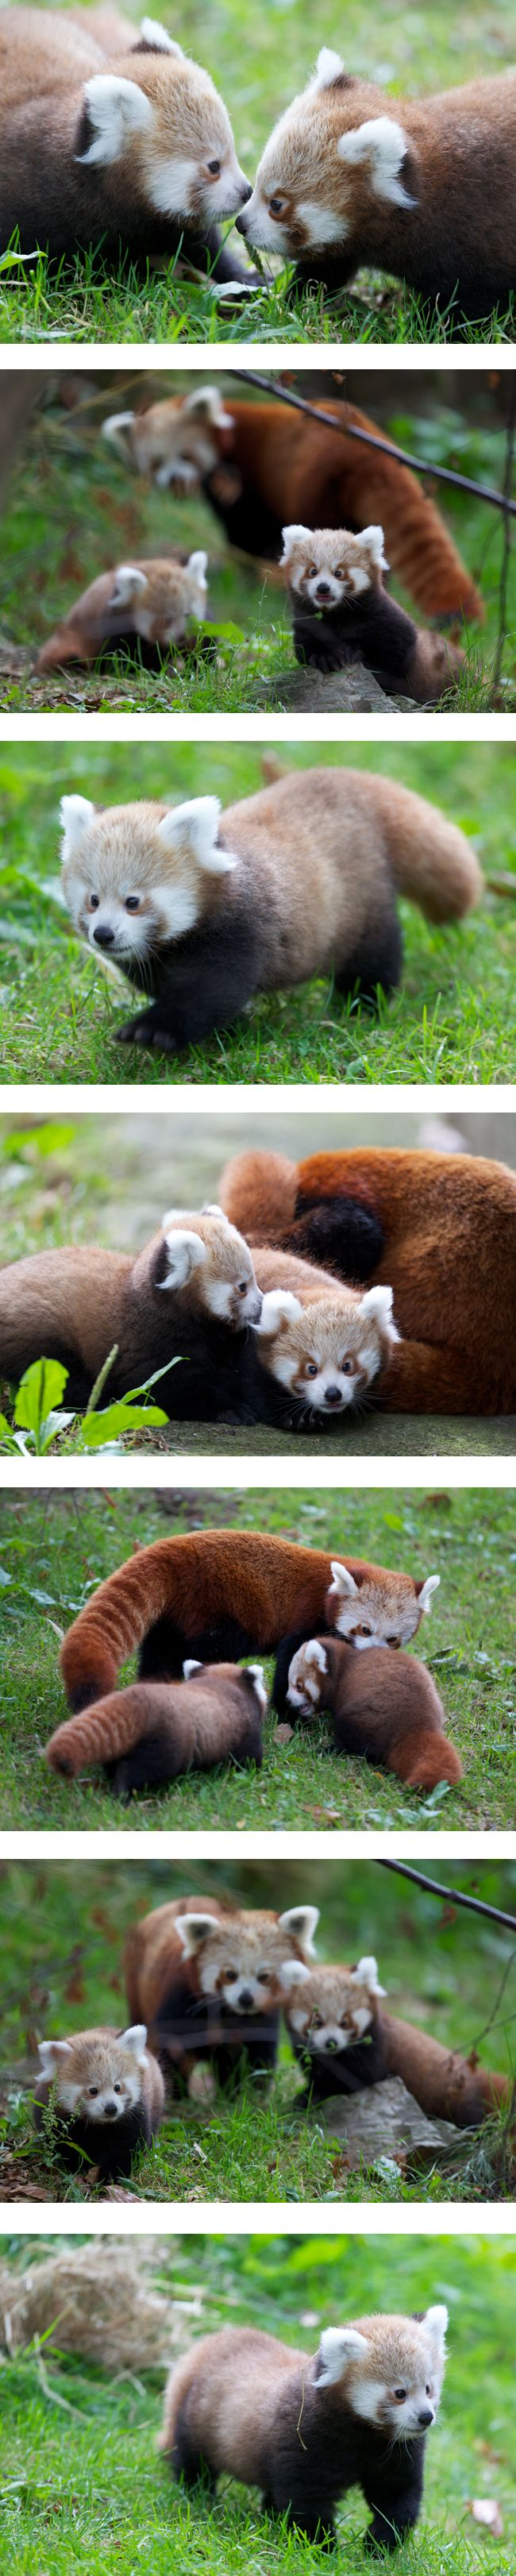 http://www.dublinzoo.ie/Images/Uploaded/RedPandaCubsSept2012.jpg